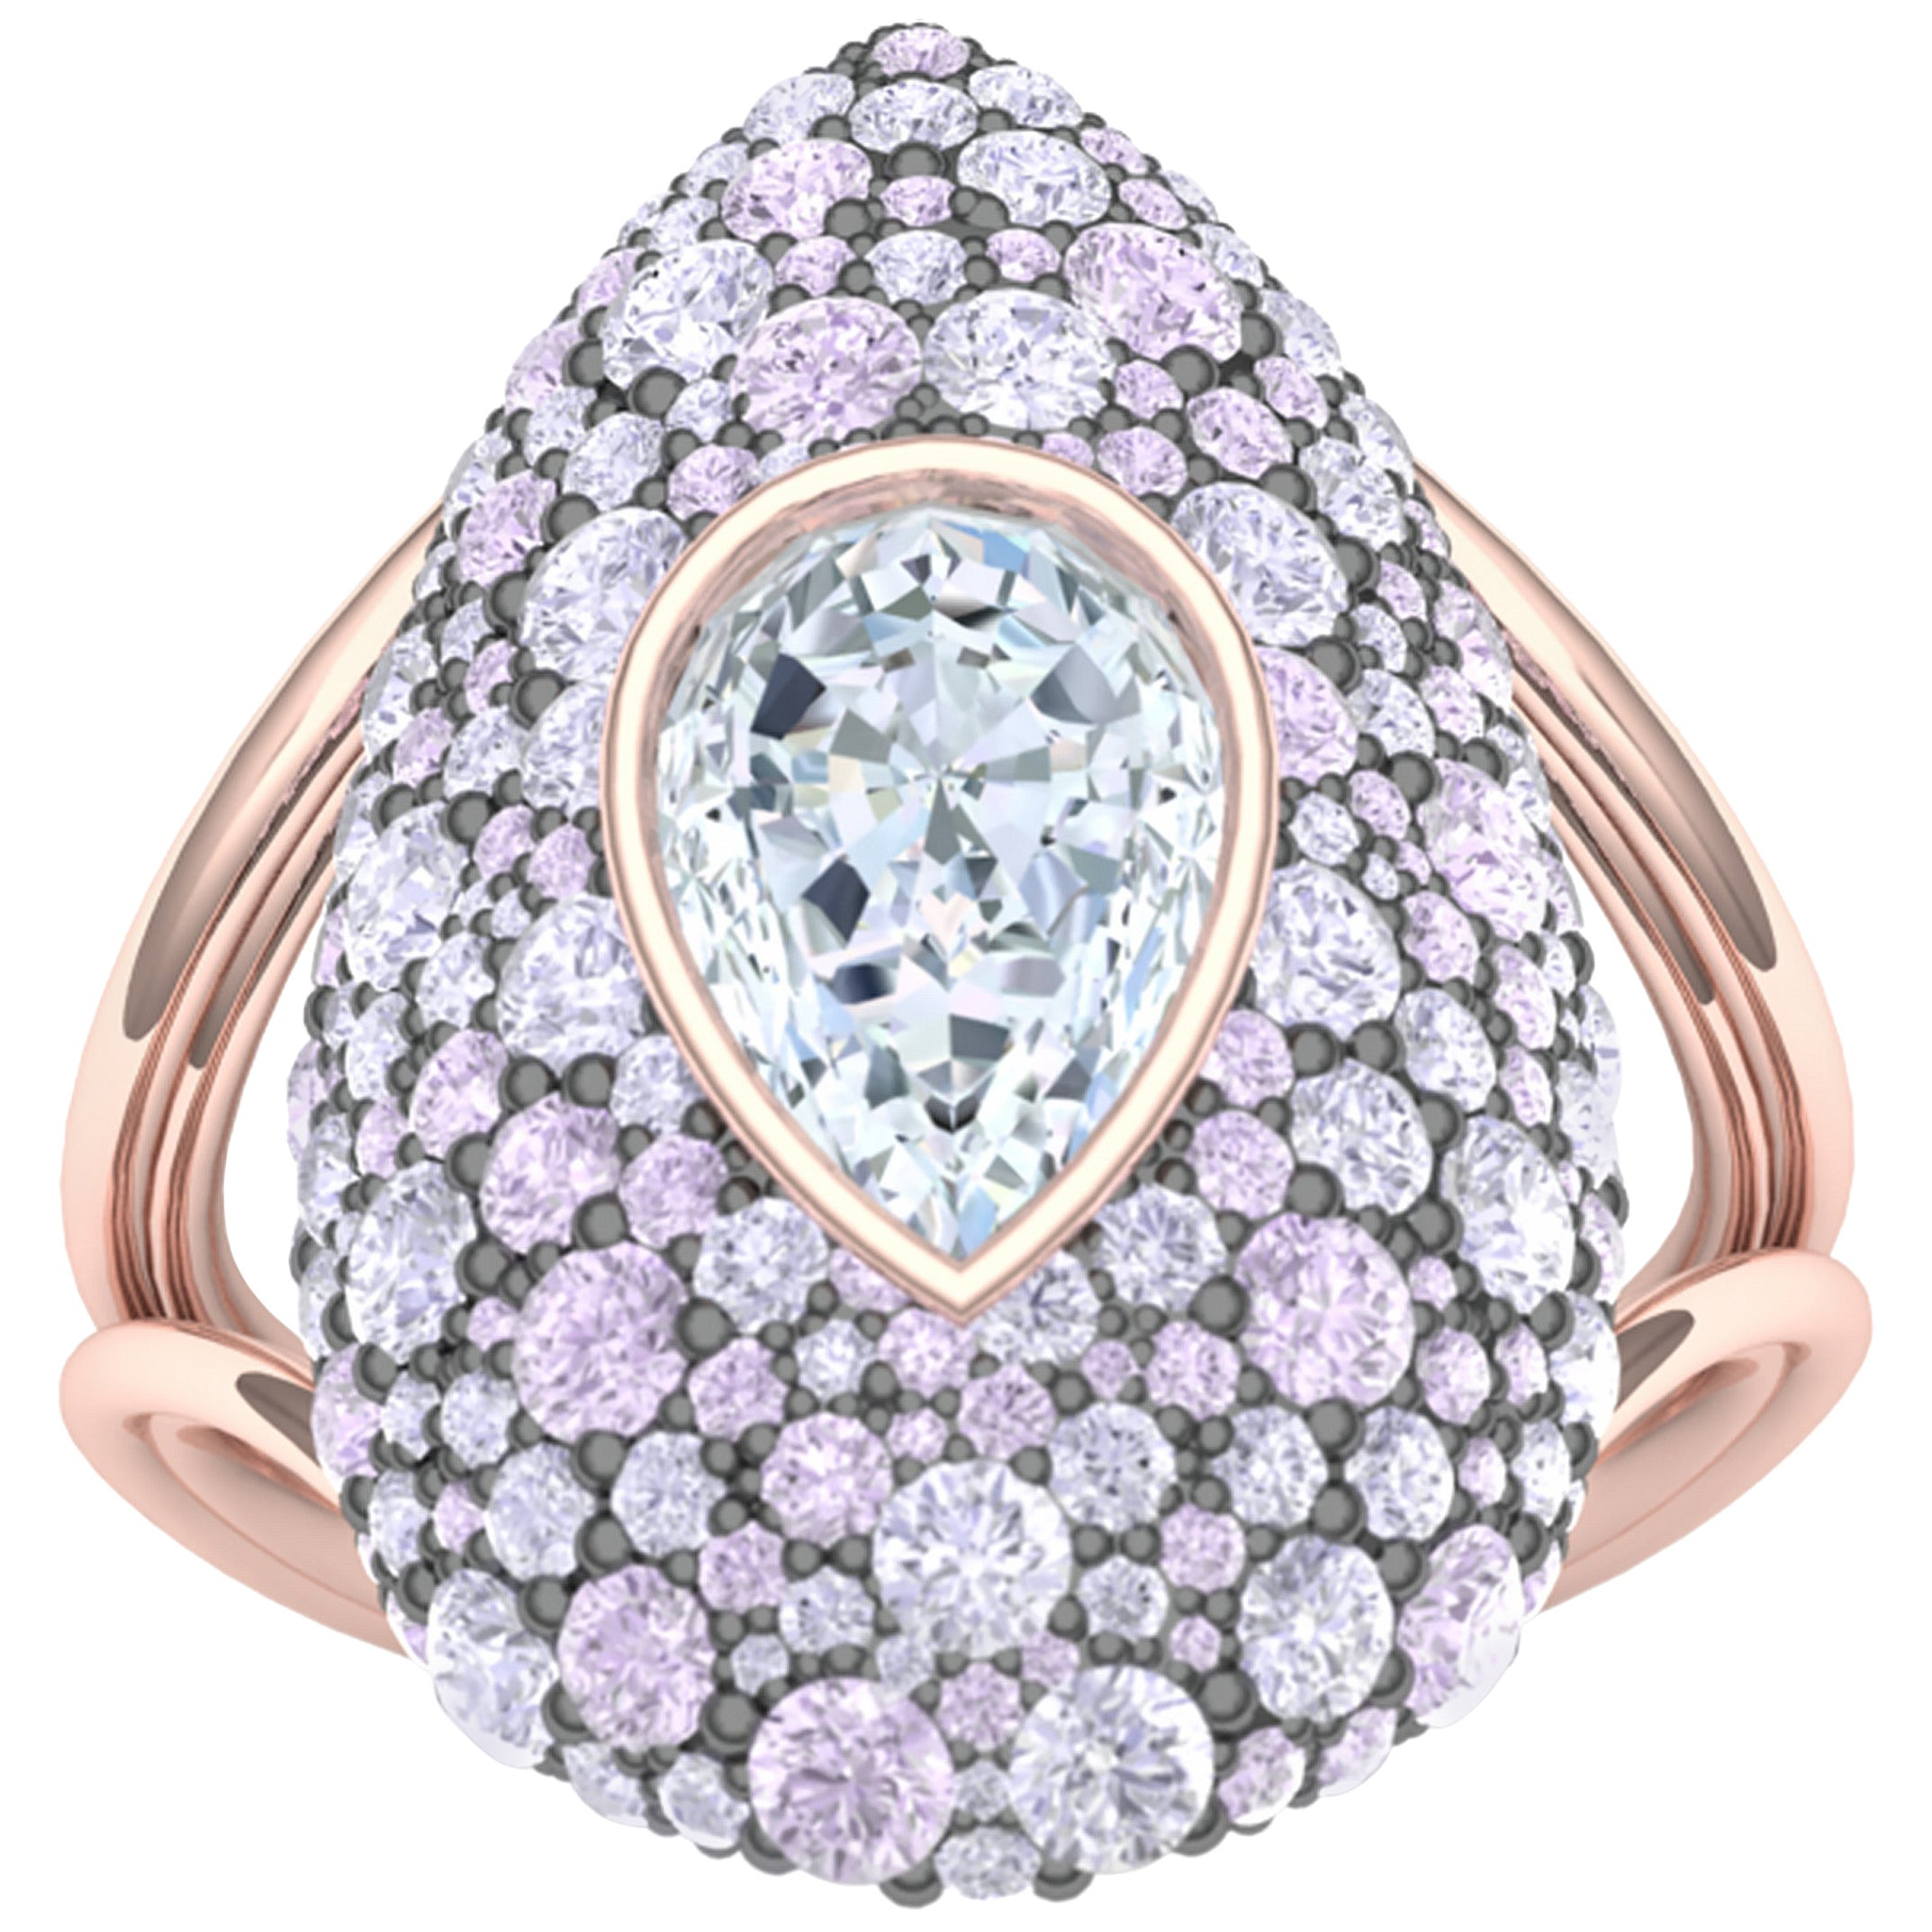 3 Carat Diamond and Purple Pink Sapphires Rose Gold Ring